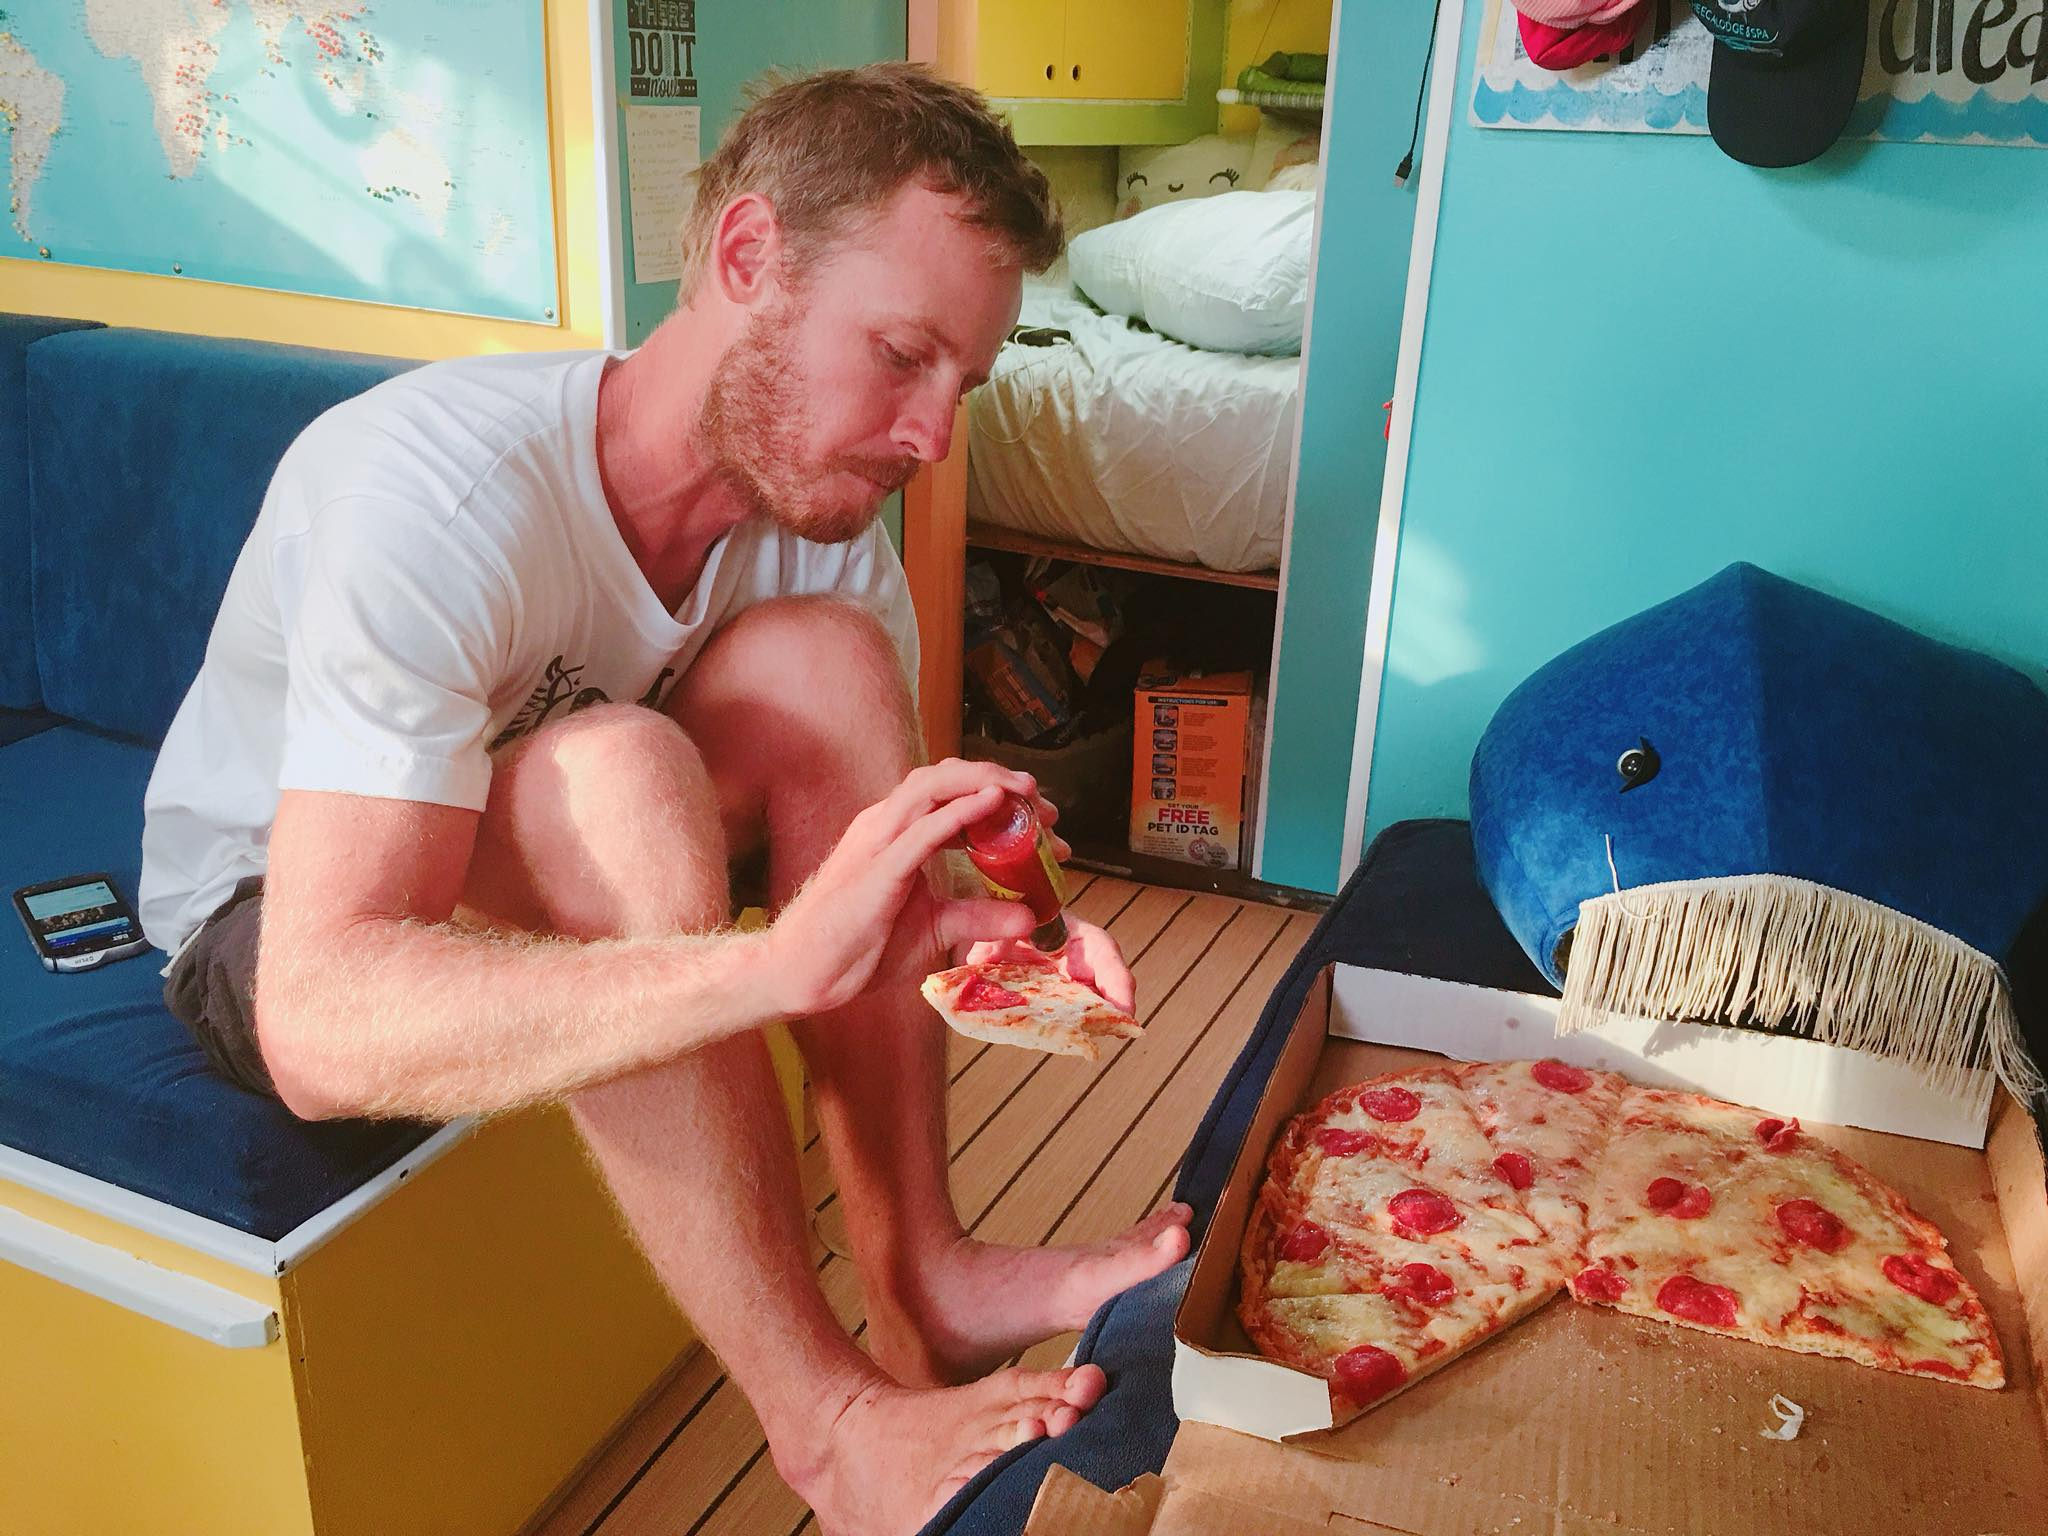 Liveaboard Life Day 133: Pizza Night on the Boat! ⛵️🐈👫